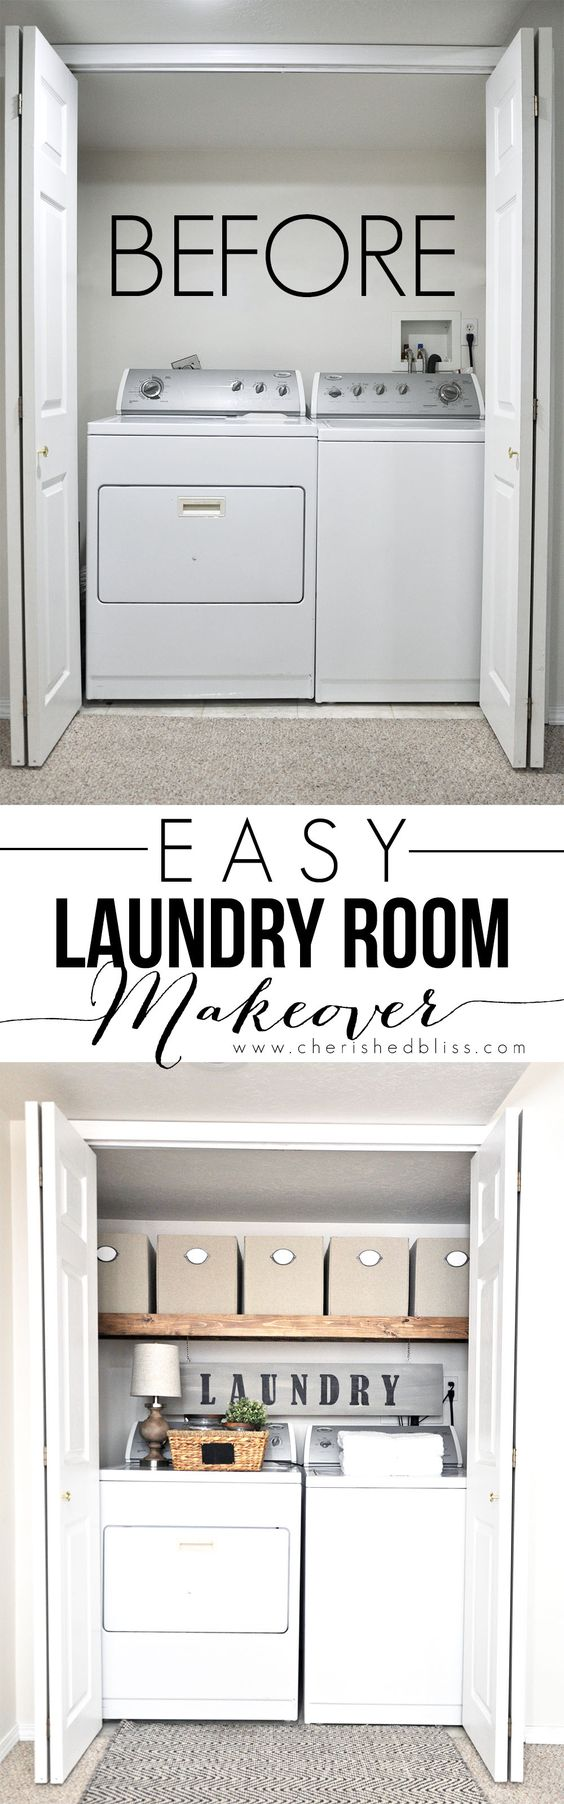 ... space into a functional laundry area with just a few simple changes